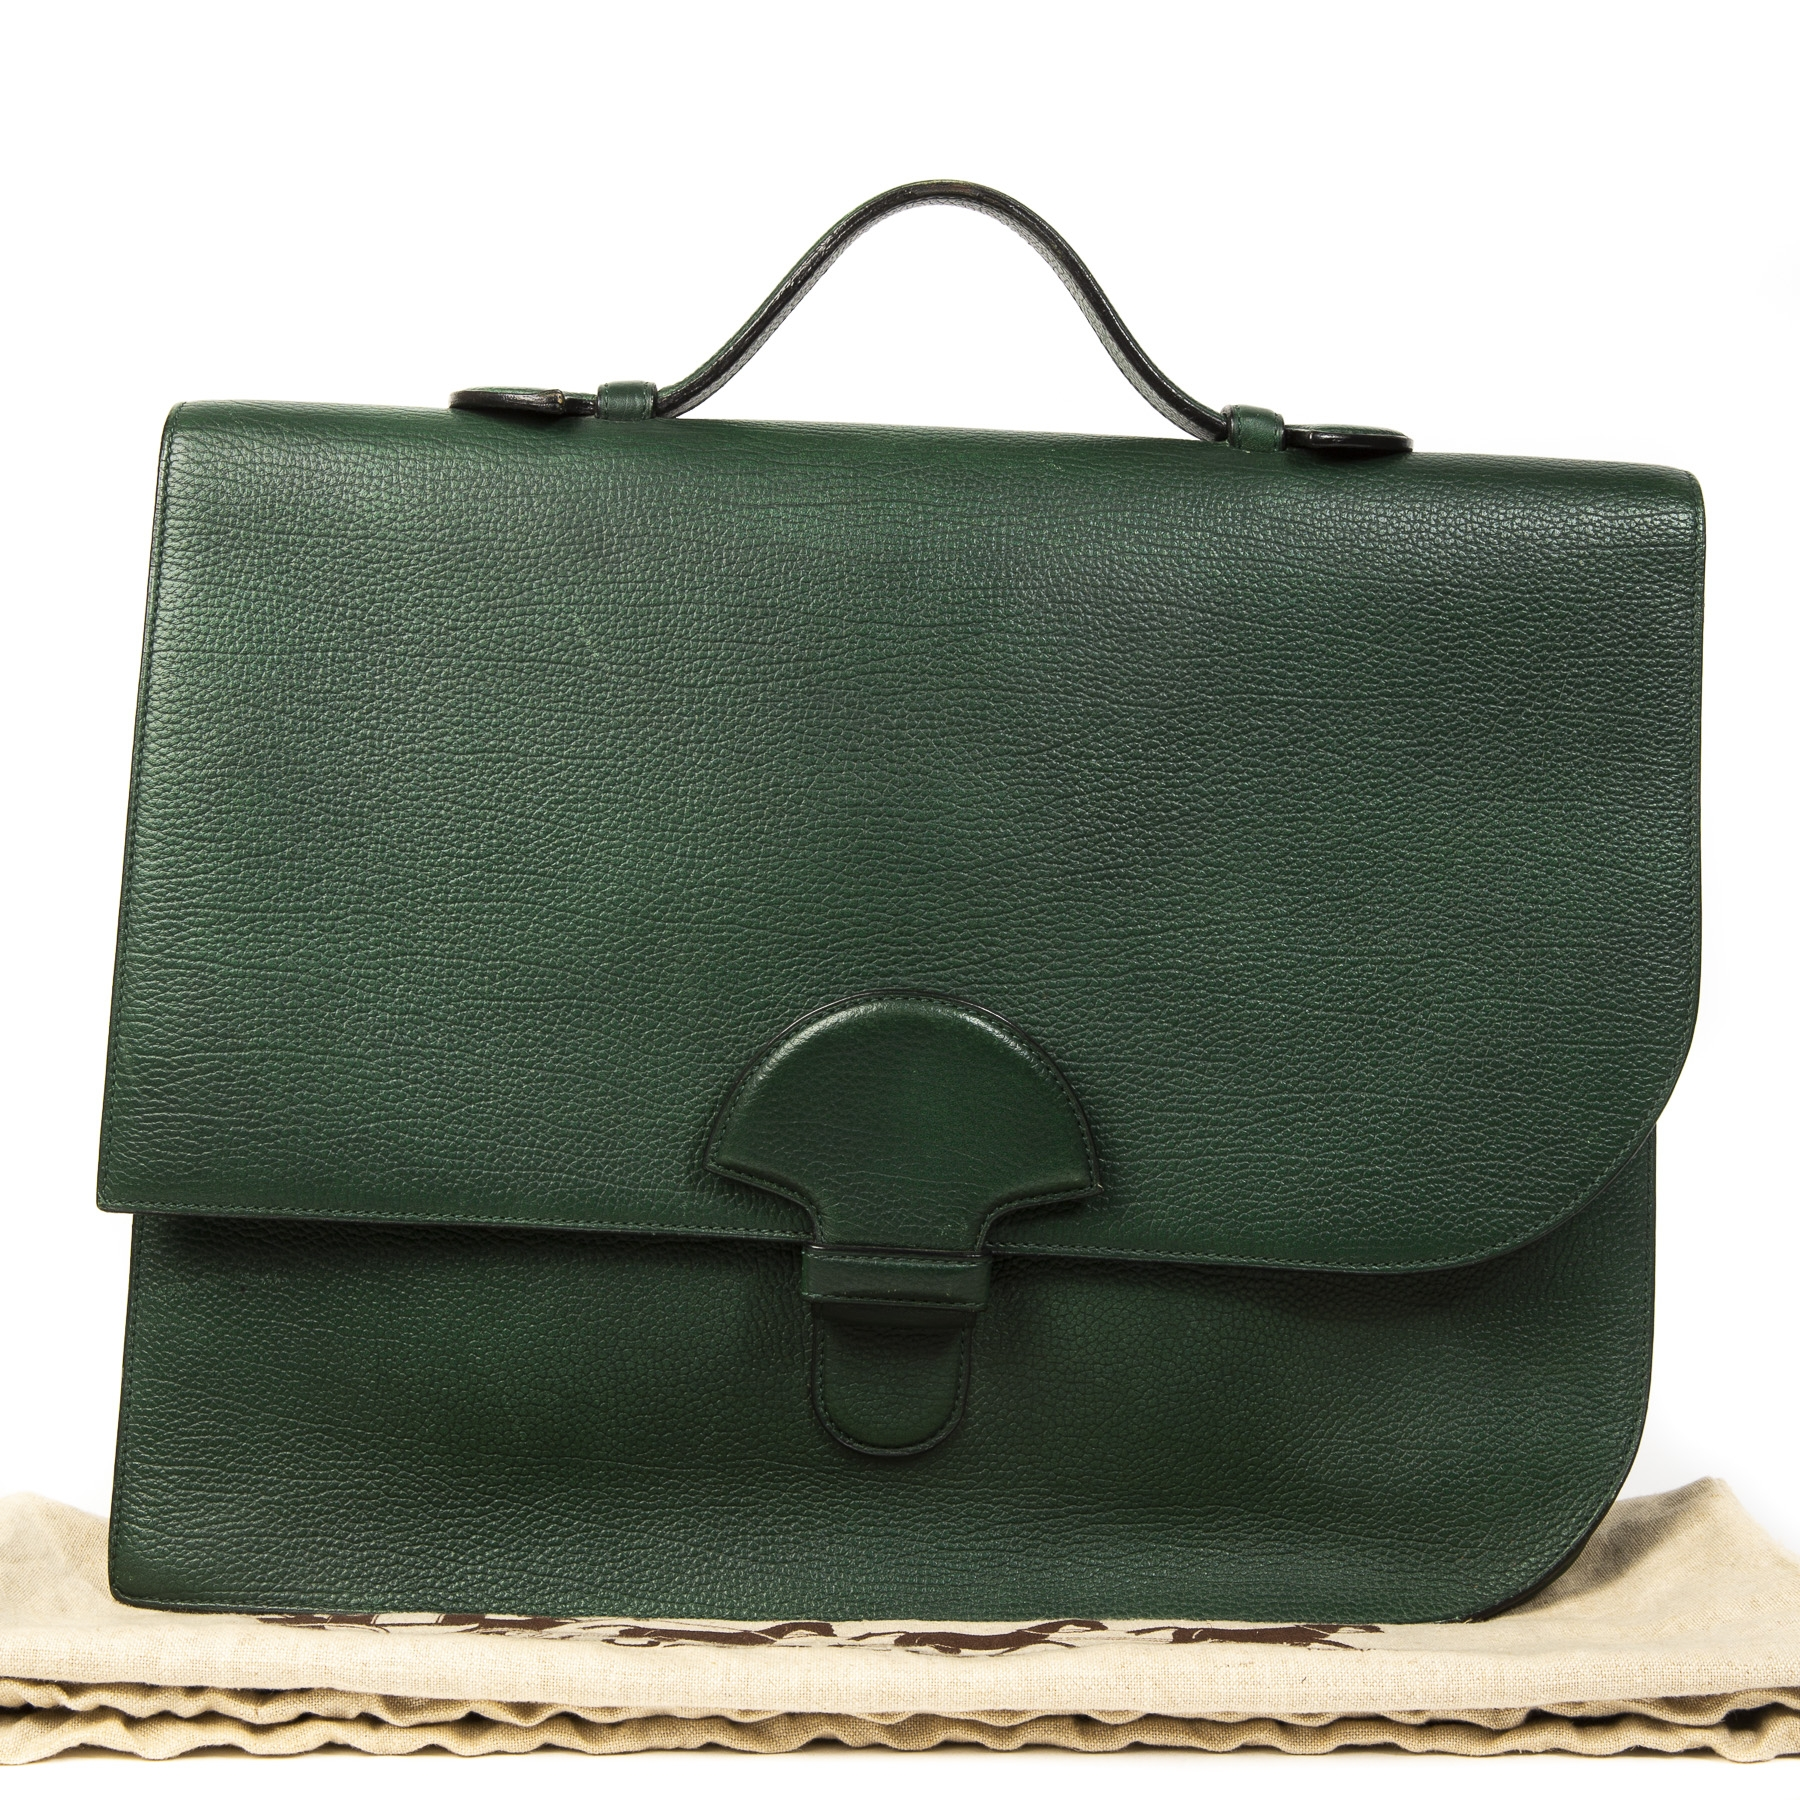 Delvaux Green Cartable Presse Briefcase.  Buy authentic secondhand Delvaux Green Cartable Presse Briefcase at labellov antwerp, safe payment. Koop online tweedehands Delvaux Green Cartable Presse Briefcase bij labellov antwerpen, veilige betaling.